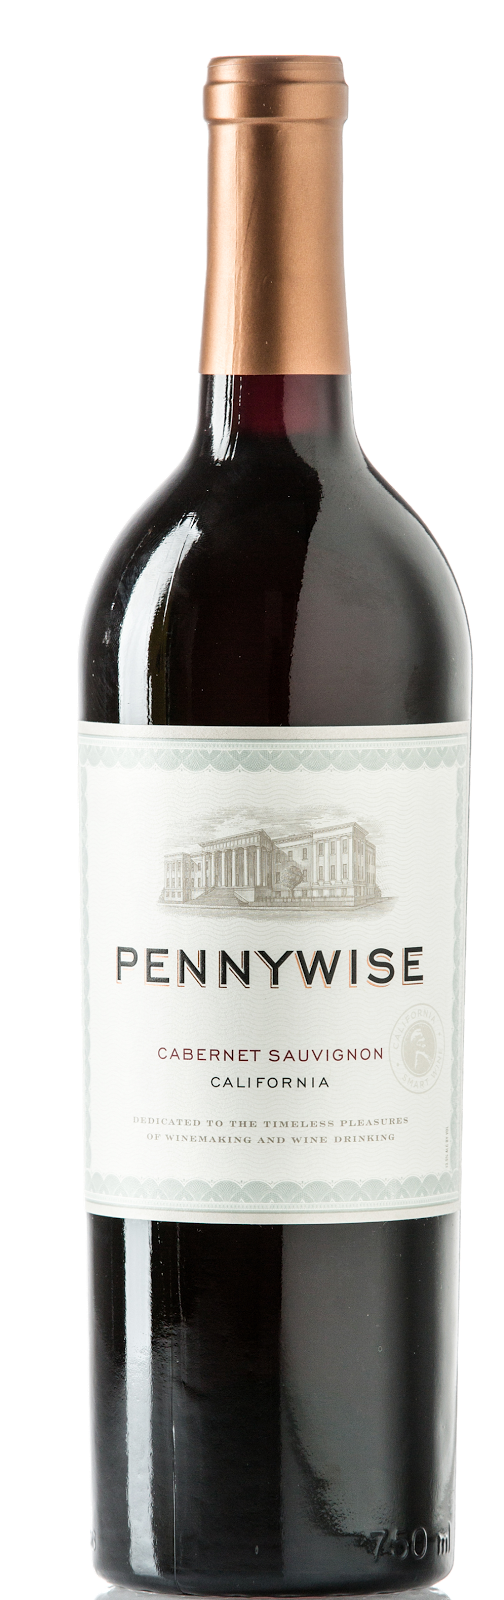 bottle of Pennywise Cabernet Sauvignon